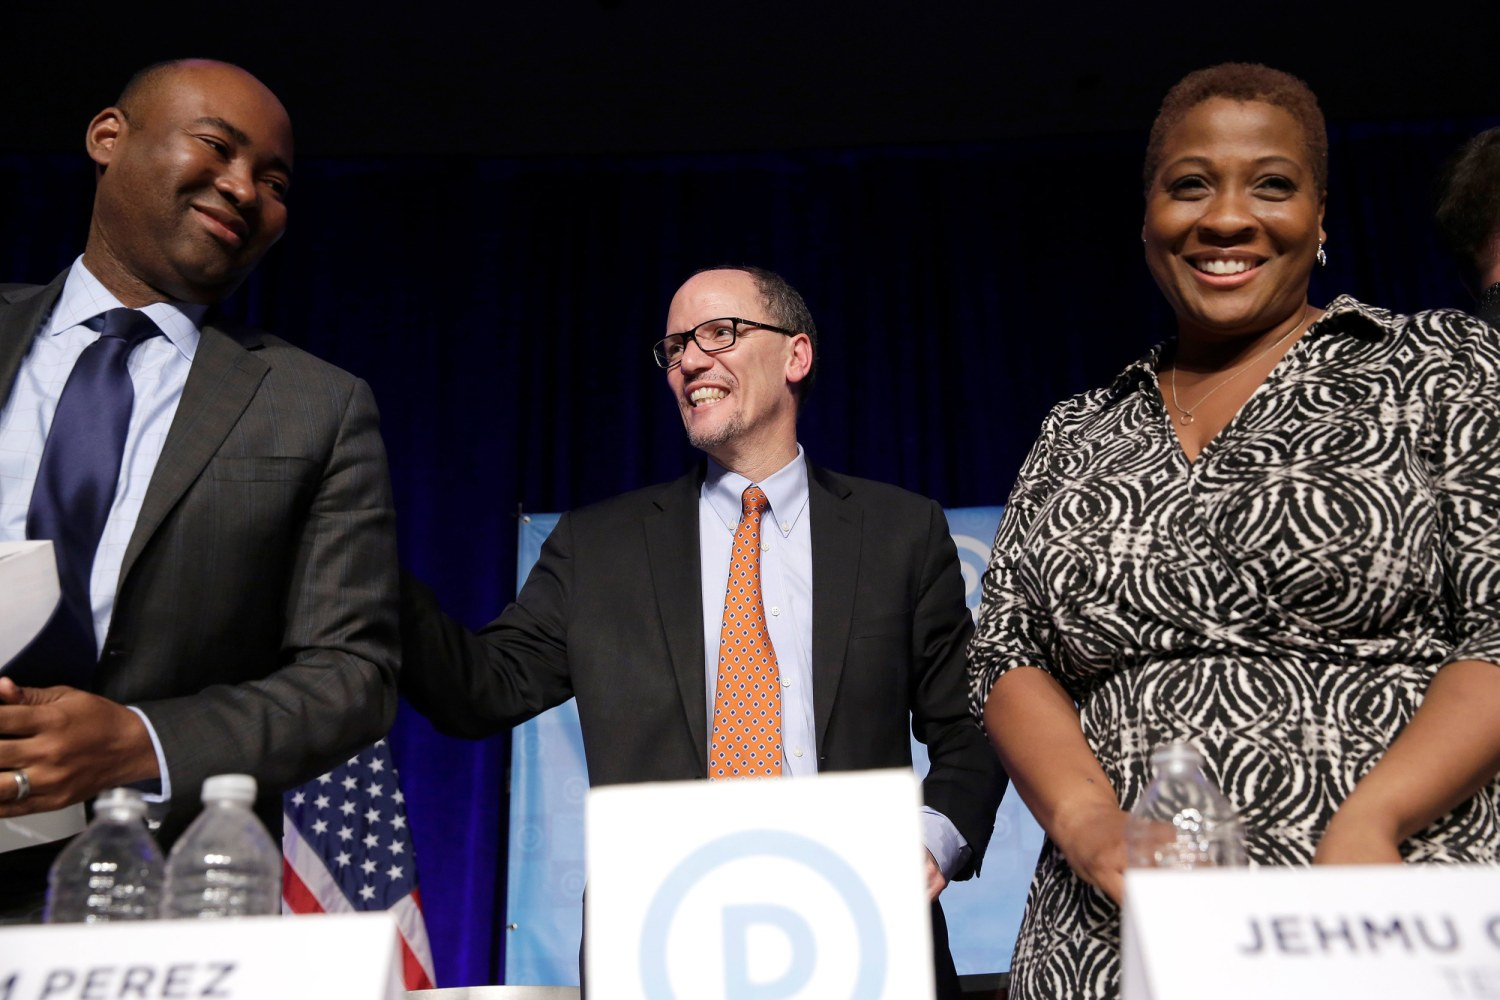 Tom Perez, new DNC chairman, suggests Trump 'rigged' general election